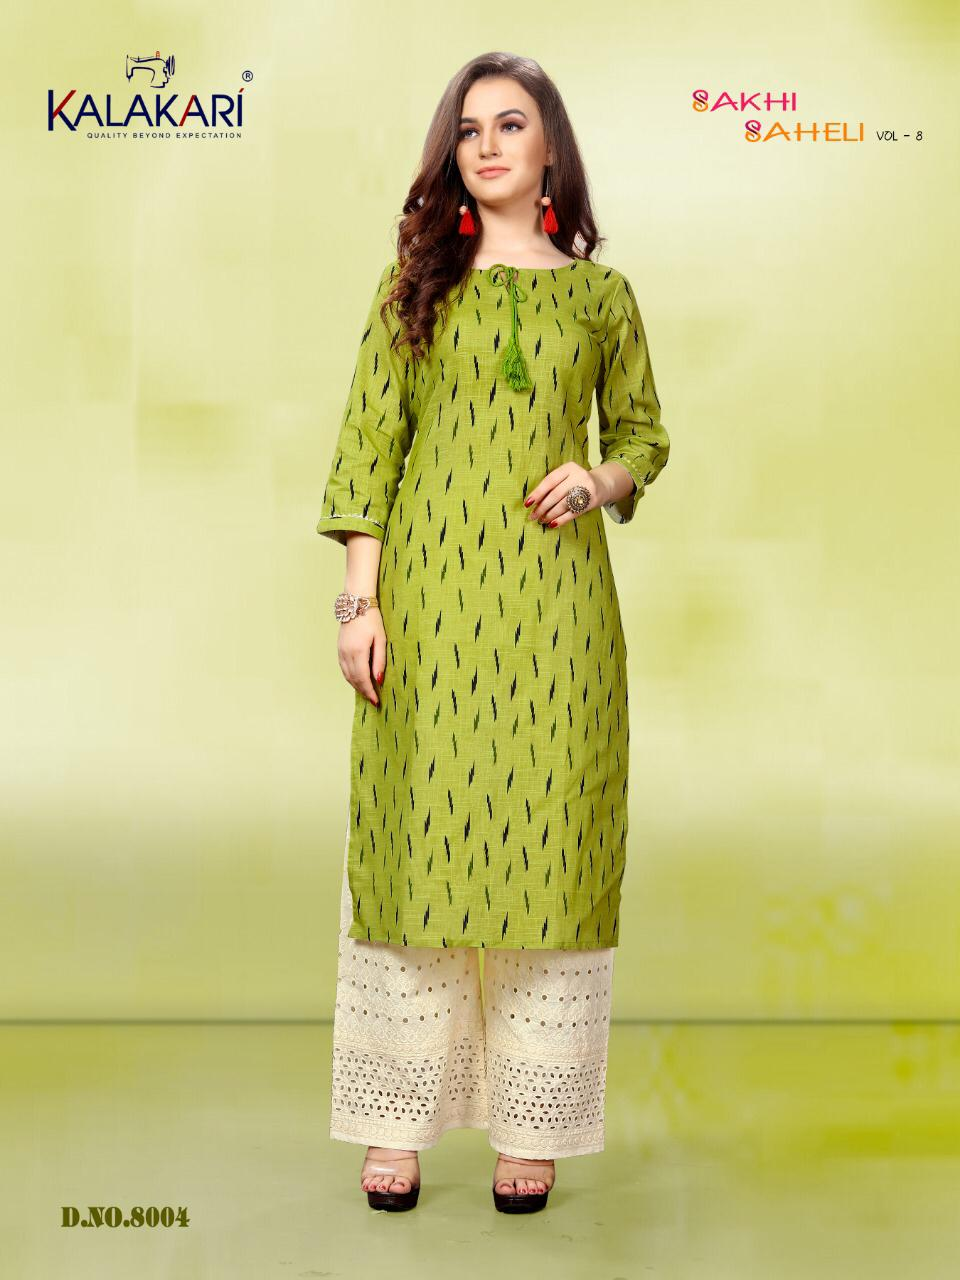 Kalakari NX Sakhi Saheli Vol 8 collection 3